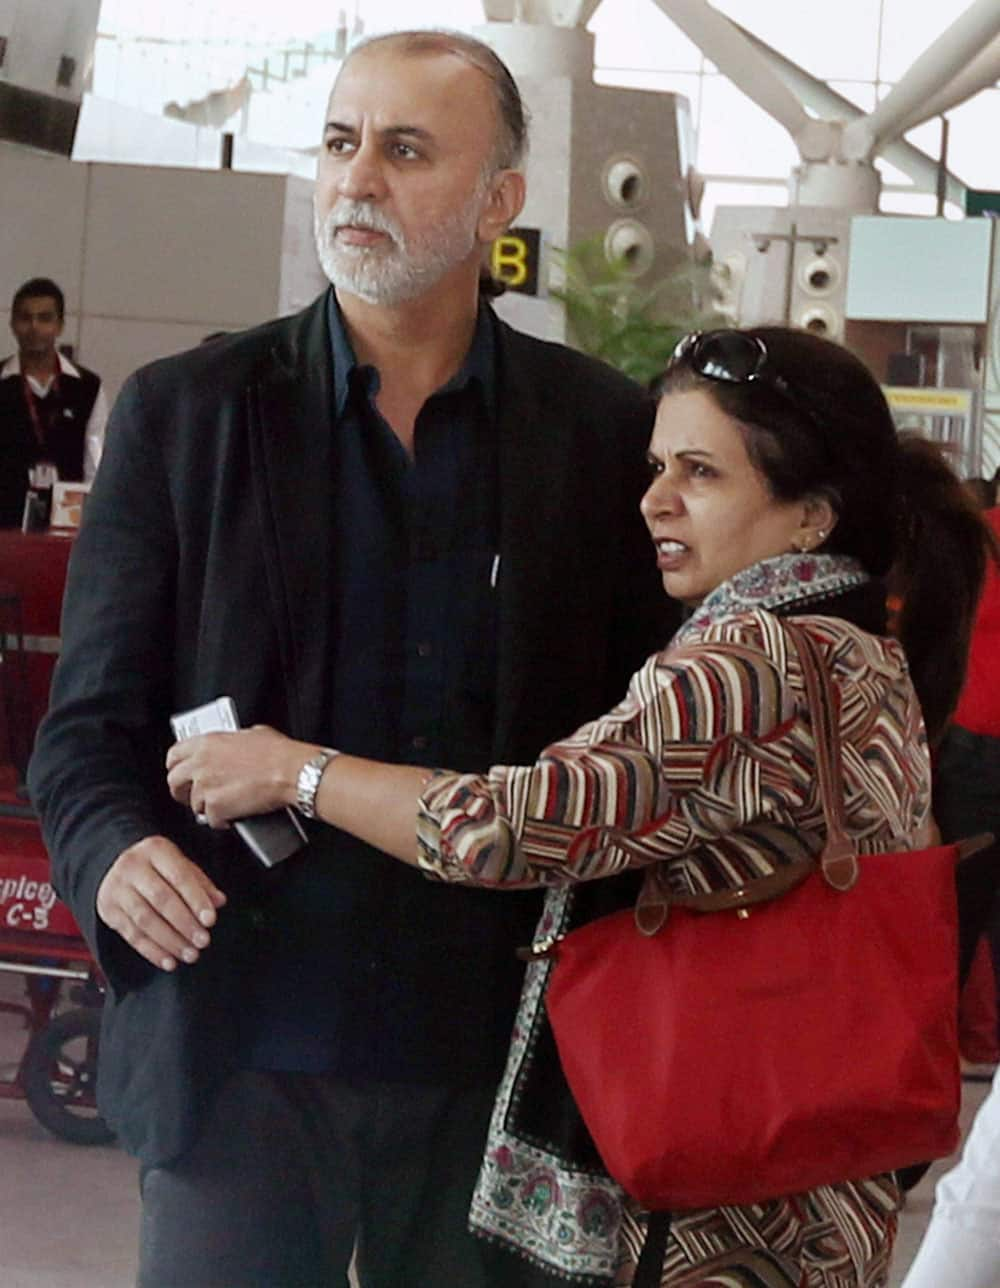 Tehelka editor-in-chief Tarun Tejpal with his wife at the Indira Gandhi International Airport in New Delhi on Friday before boarding flight to Goa. Tejpal is accused of sexually assaulting a woman journalist.